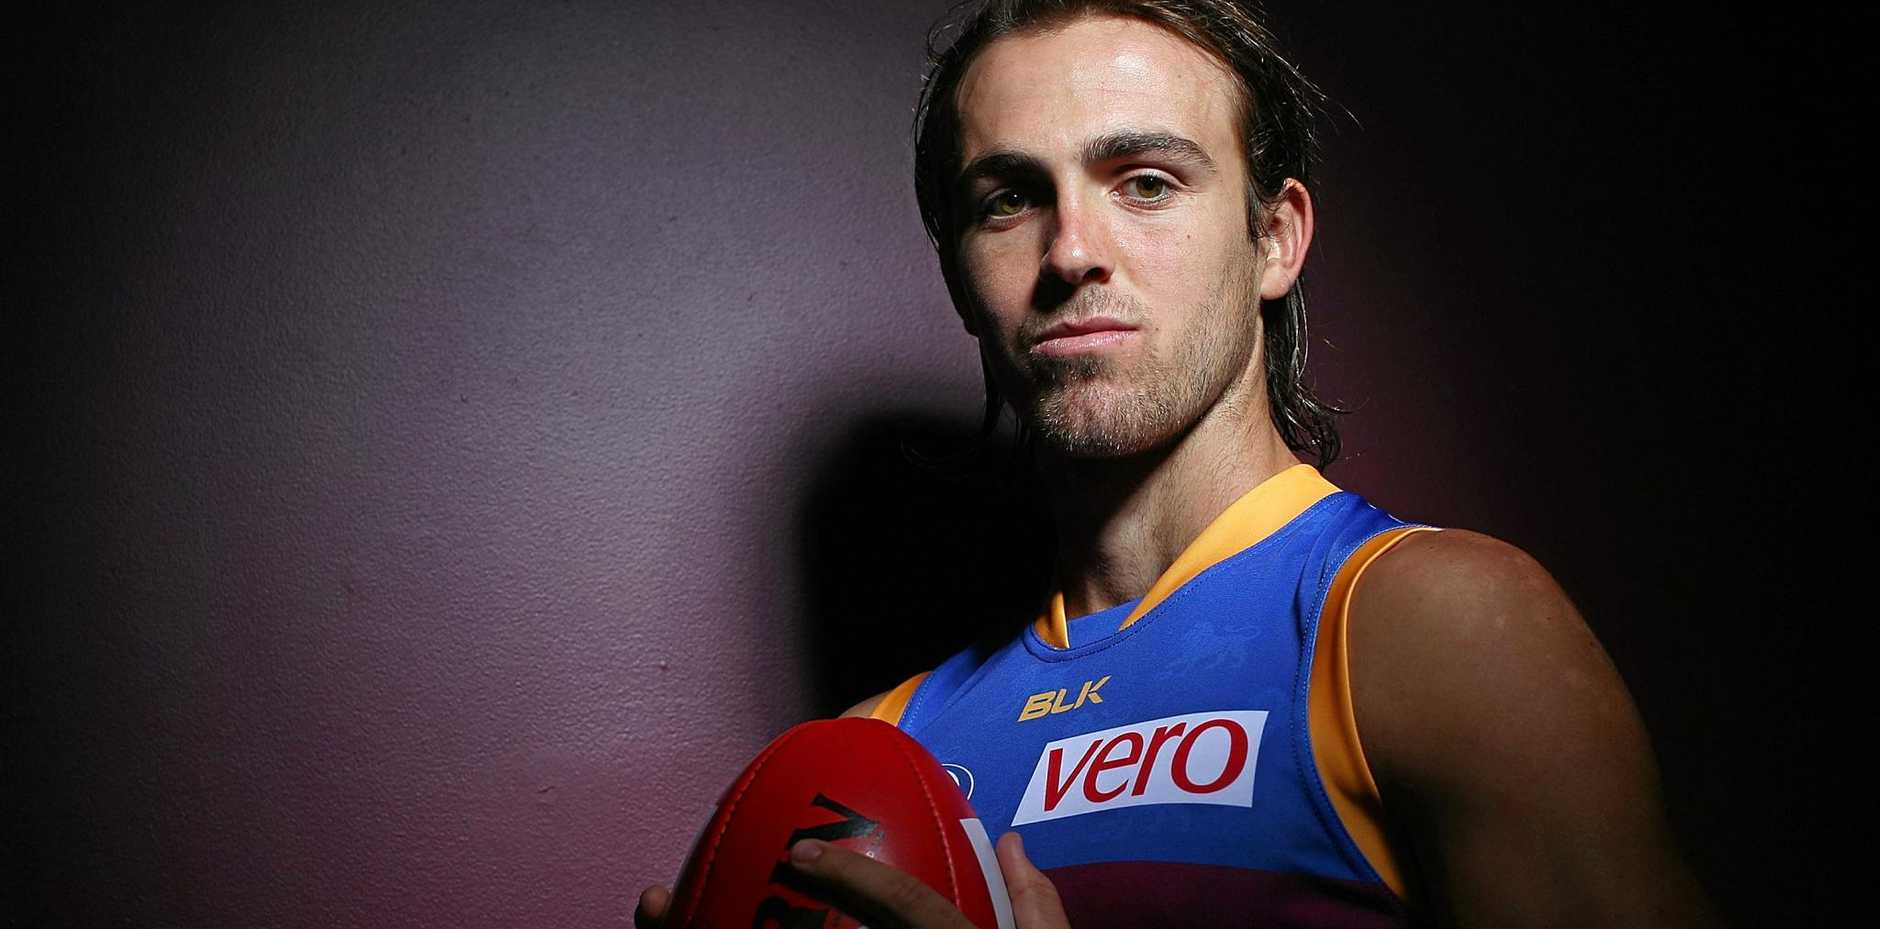 COMBATIVE: Brisbane Lions' versatile Rhys Mathieson cops criticism about his play on the chin.